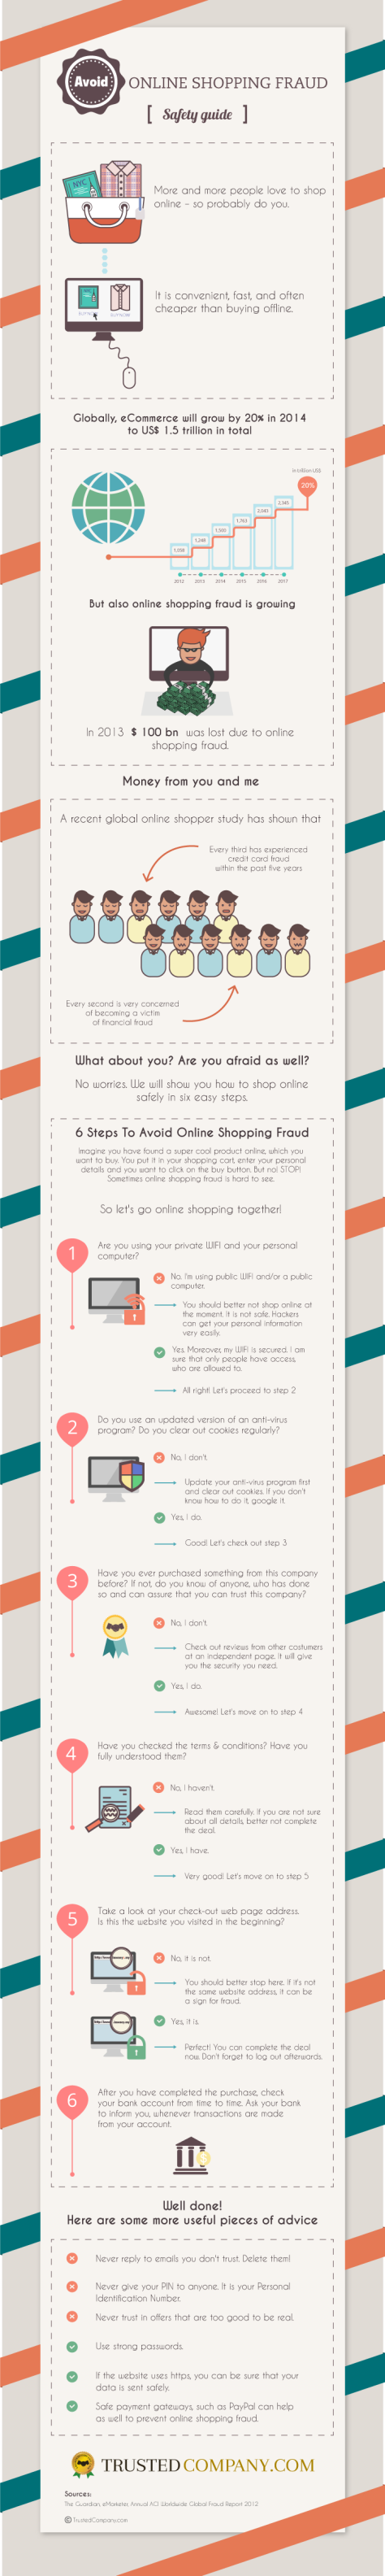 online-shopping-fraud-infographic